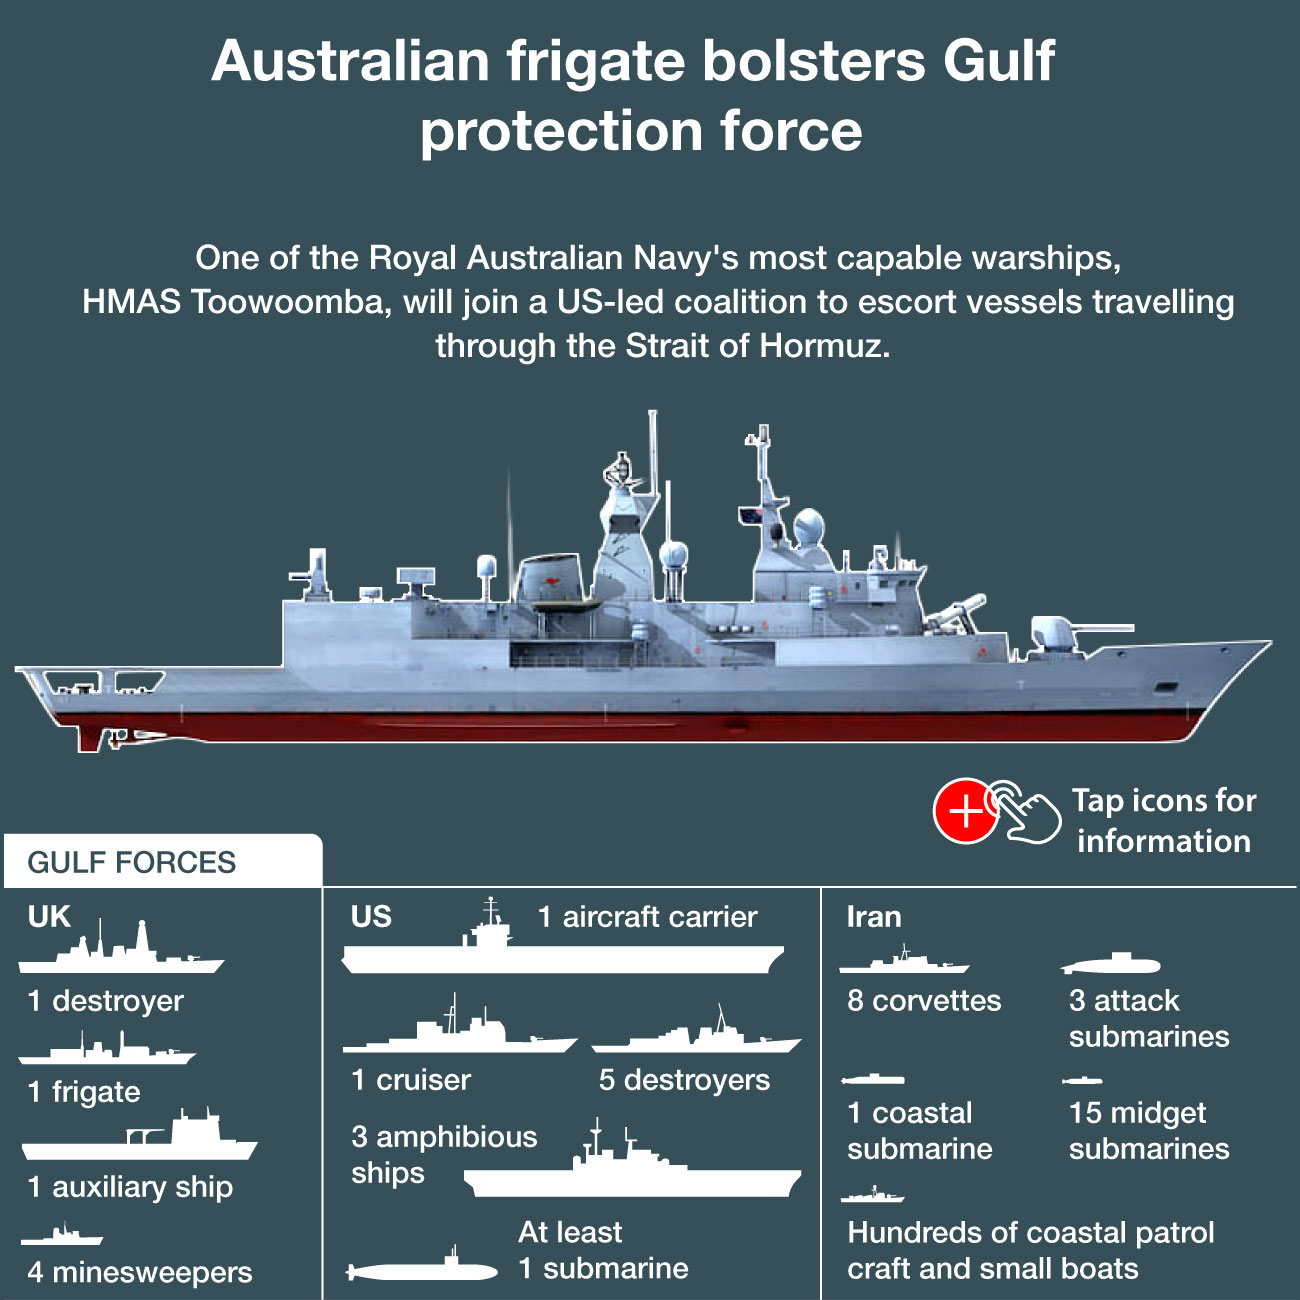 NED-190-Dire Straits Australia sends warships to Straits of Hormuz - 0